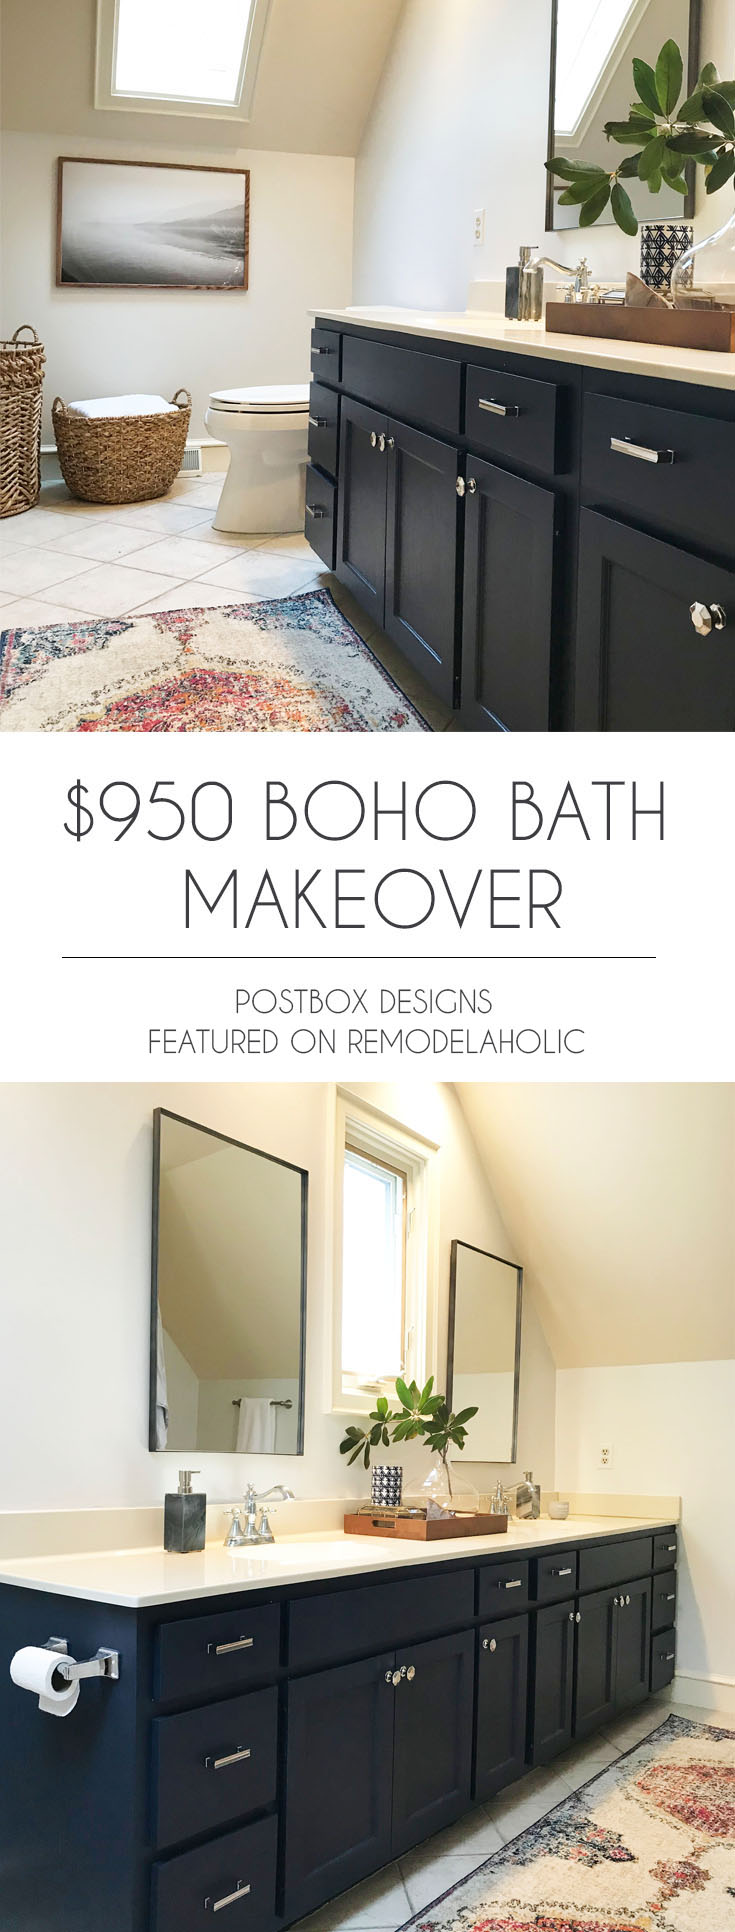 Budget-Friendly Master Bathroom Makeover | Update your bathroom with these affordable product picks and tips #remodelaholic